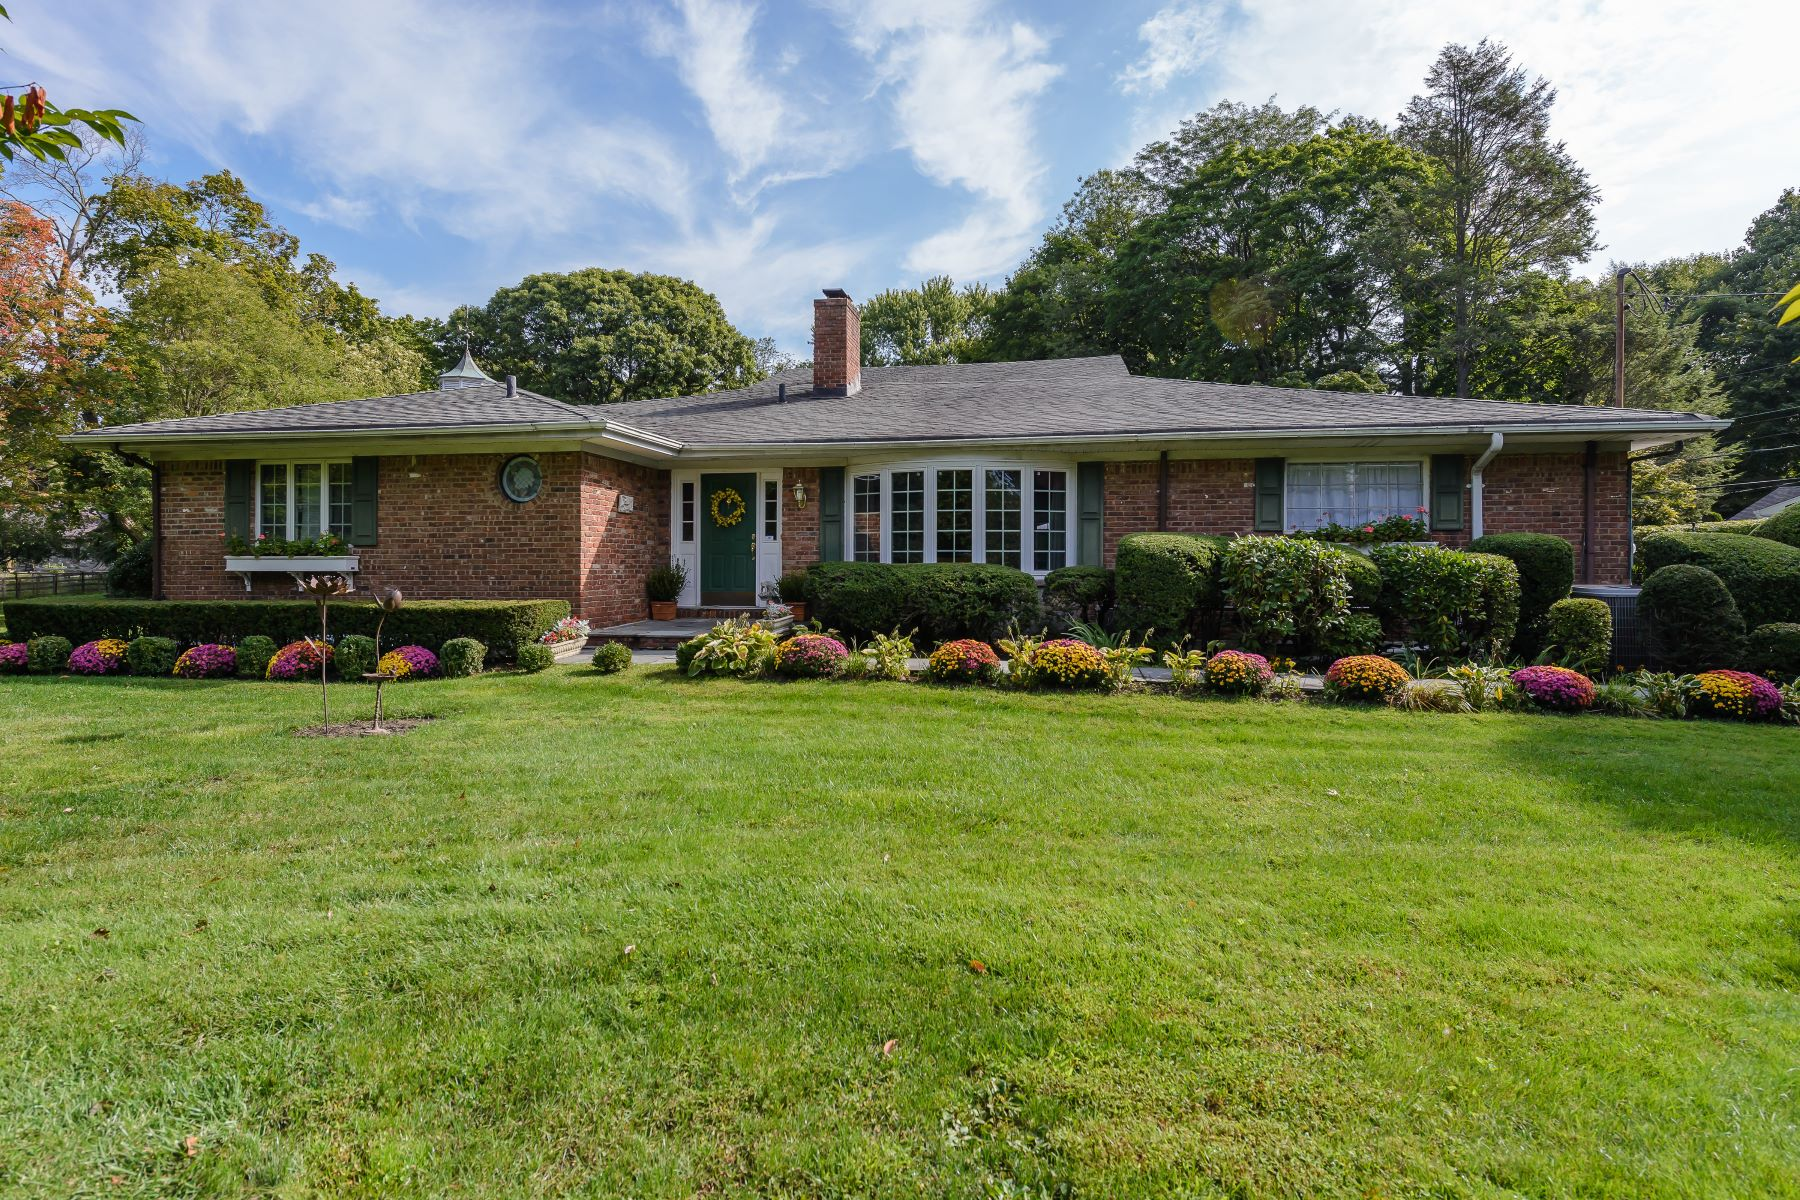 Single Family Home for Sale at 2 Knoll Rd , Sands Point, NY 11050 2 Knoll Rd, Sands Point, New York, 11050 United States